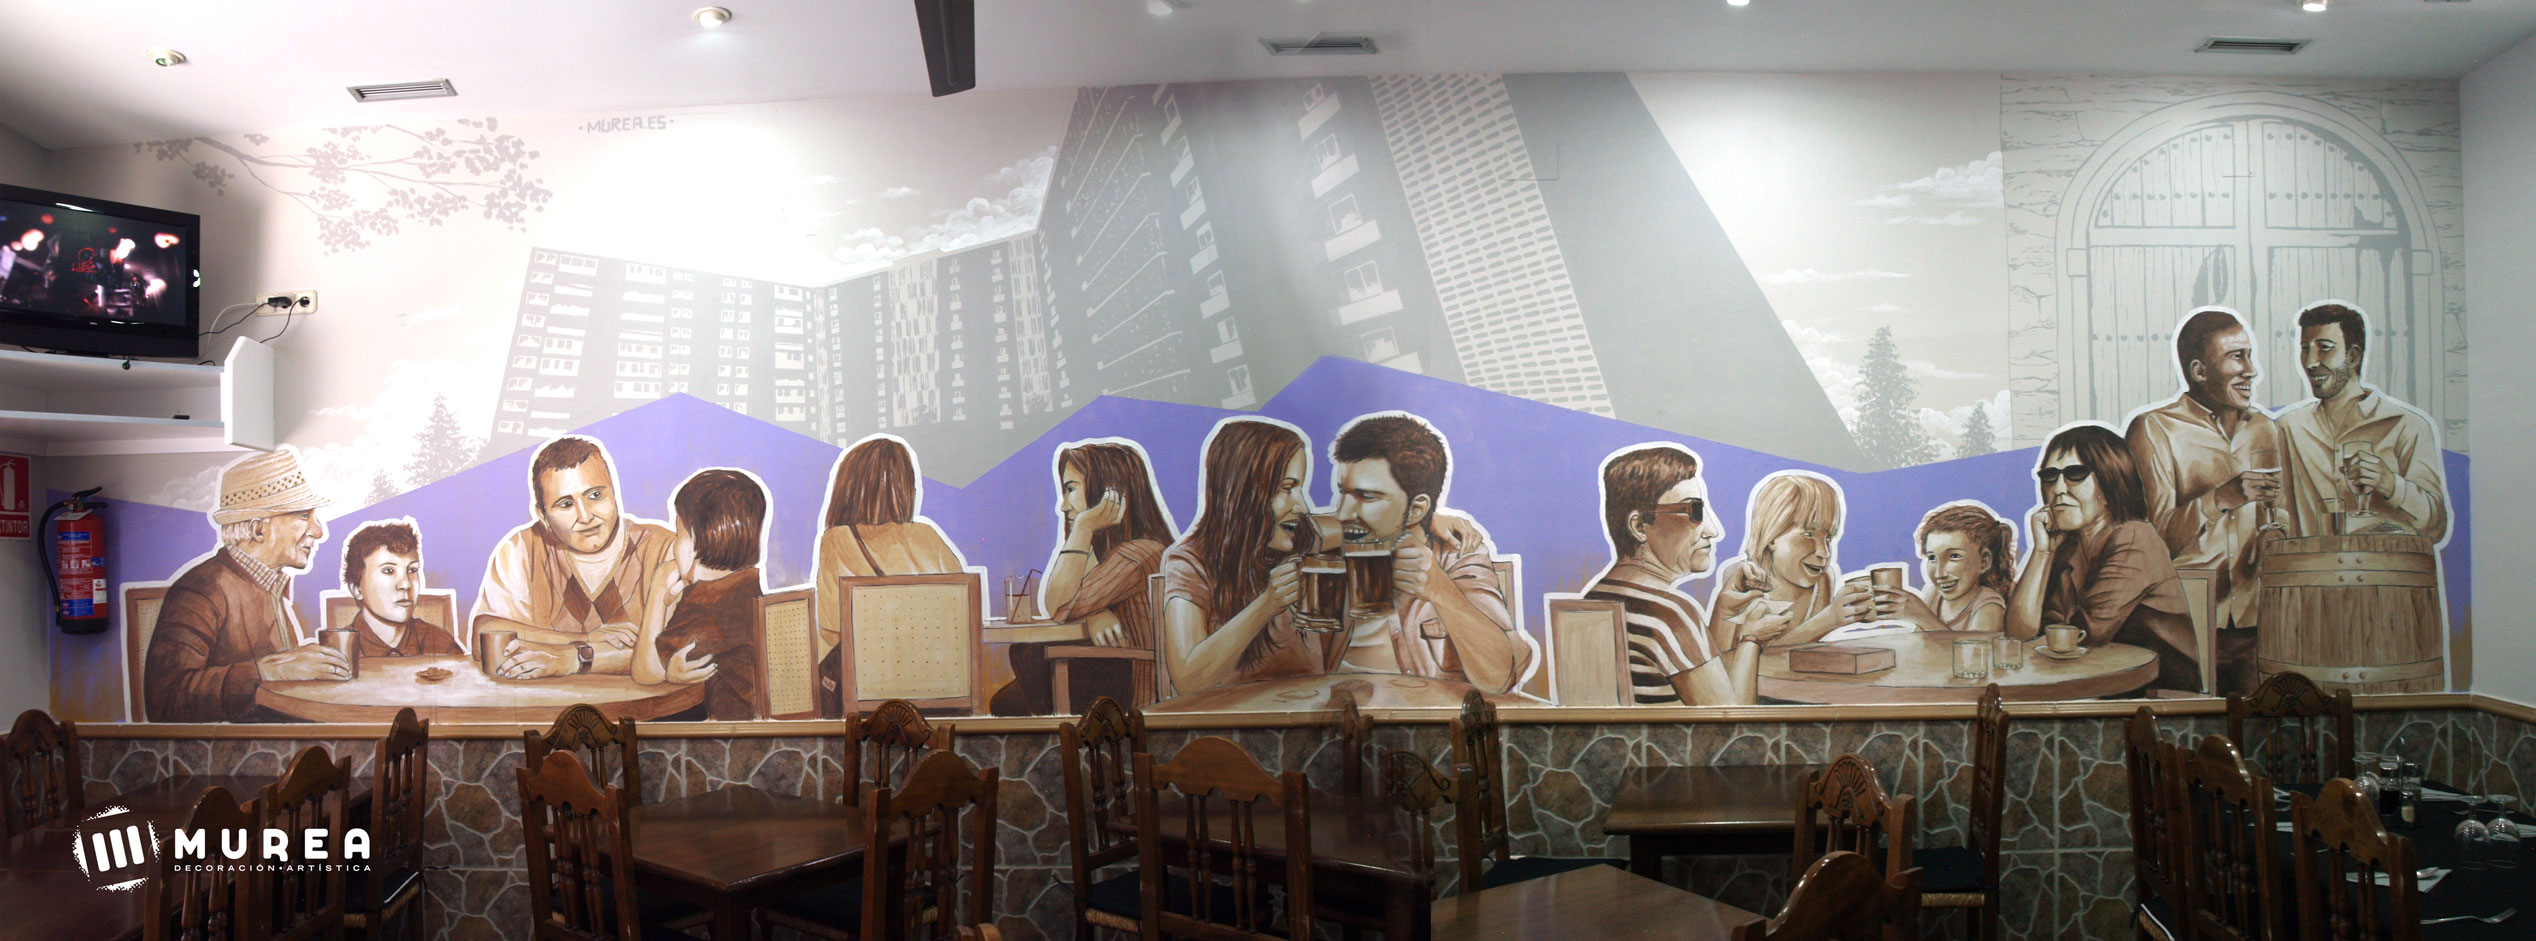 "Mural interior para restaurante ""La flechita"" Madrid 2016"